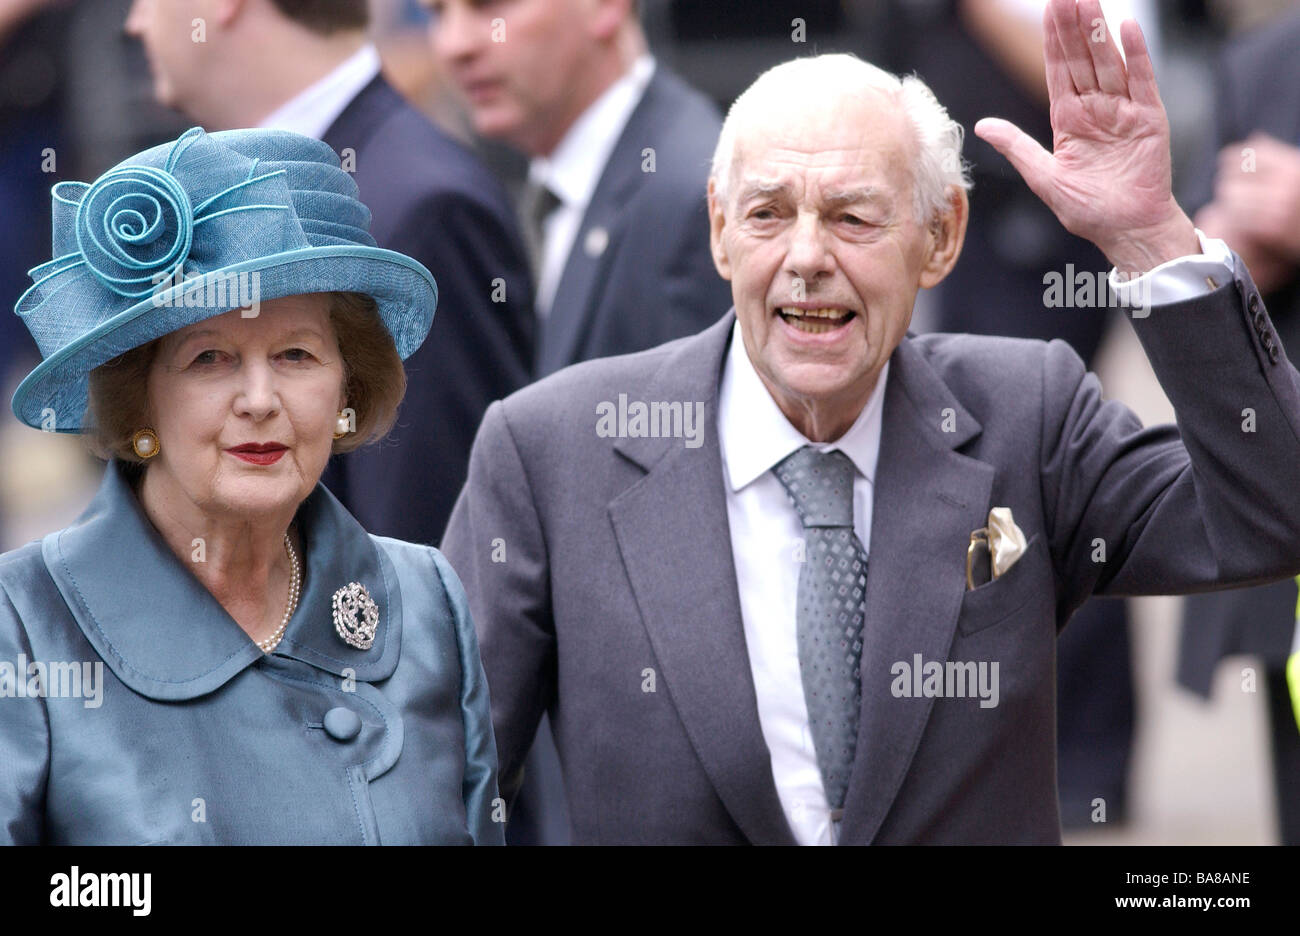 Baroness Margaret Thatcher and her husband Sir Denis Thatcher at Westminster Abbey - Stock Image